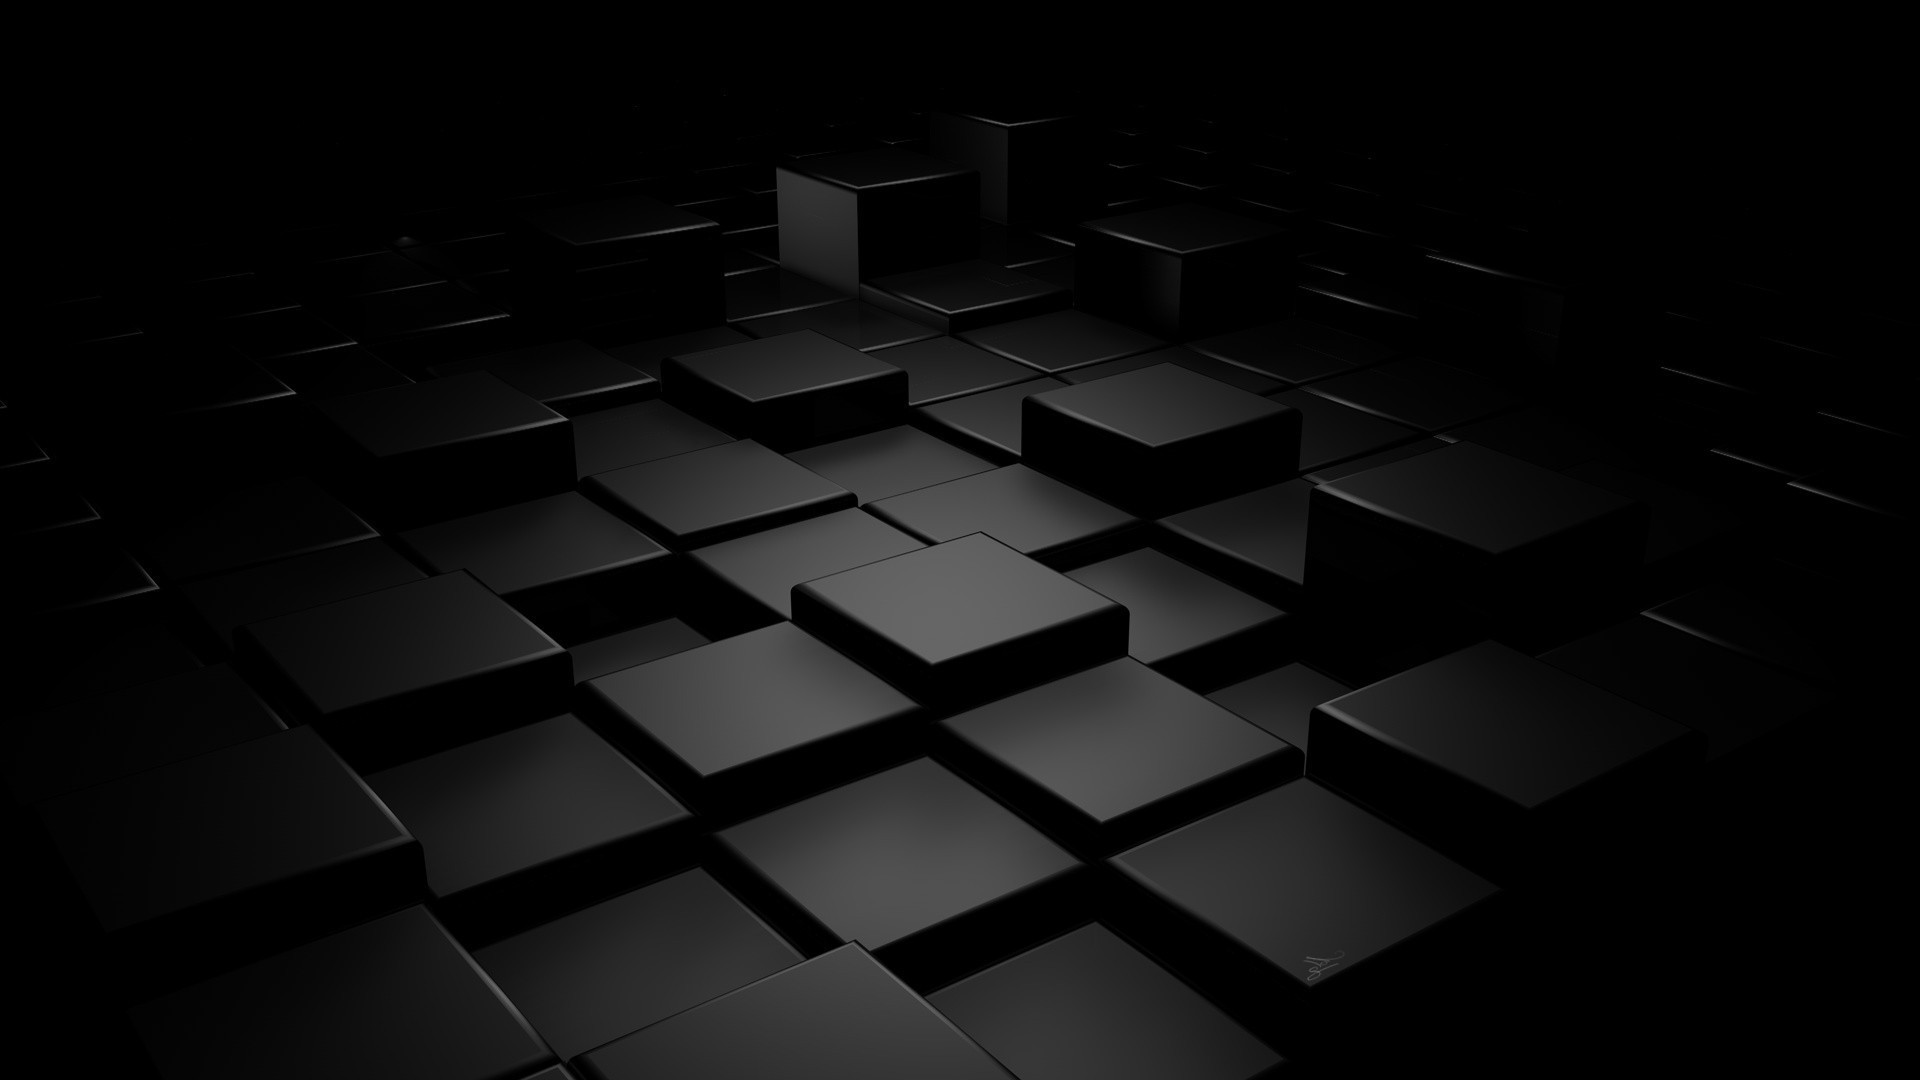 50 black wallpaper in fhd for free download for android, desktop and